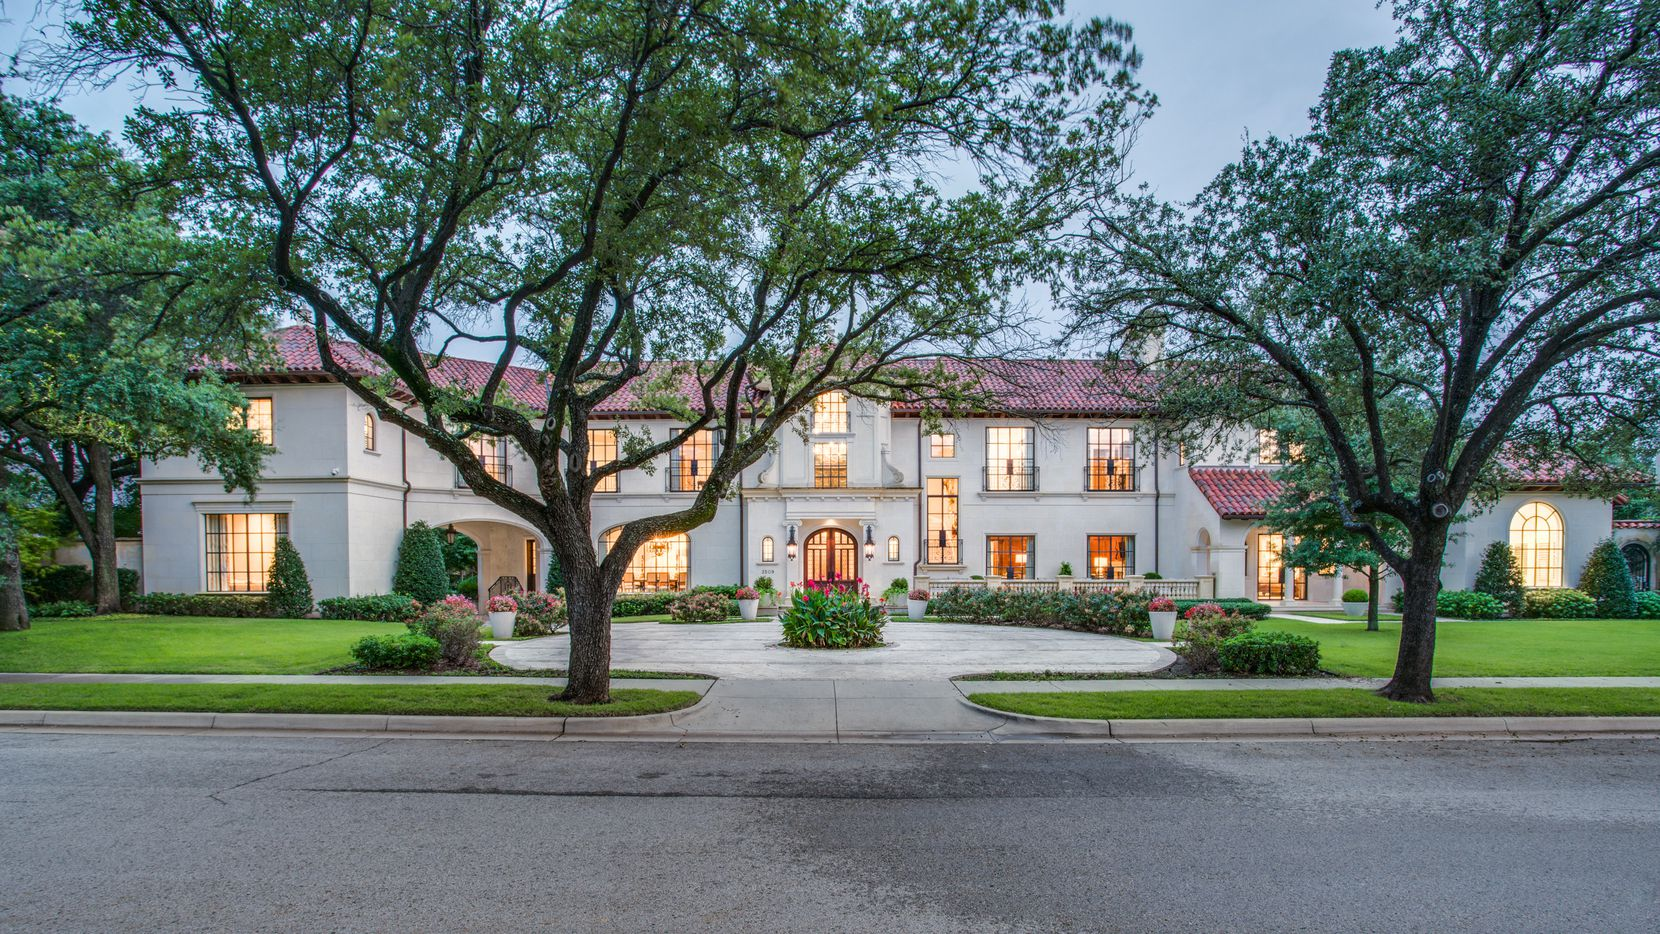 Priced at $16.75 million, this seven-bedroom home on Euclid Avenue is the most expensive on the market in the Park Cities.